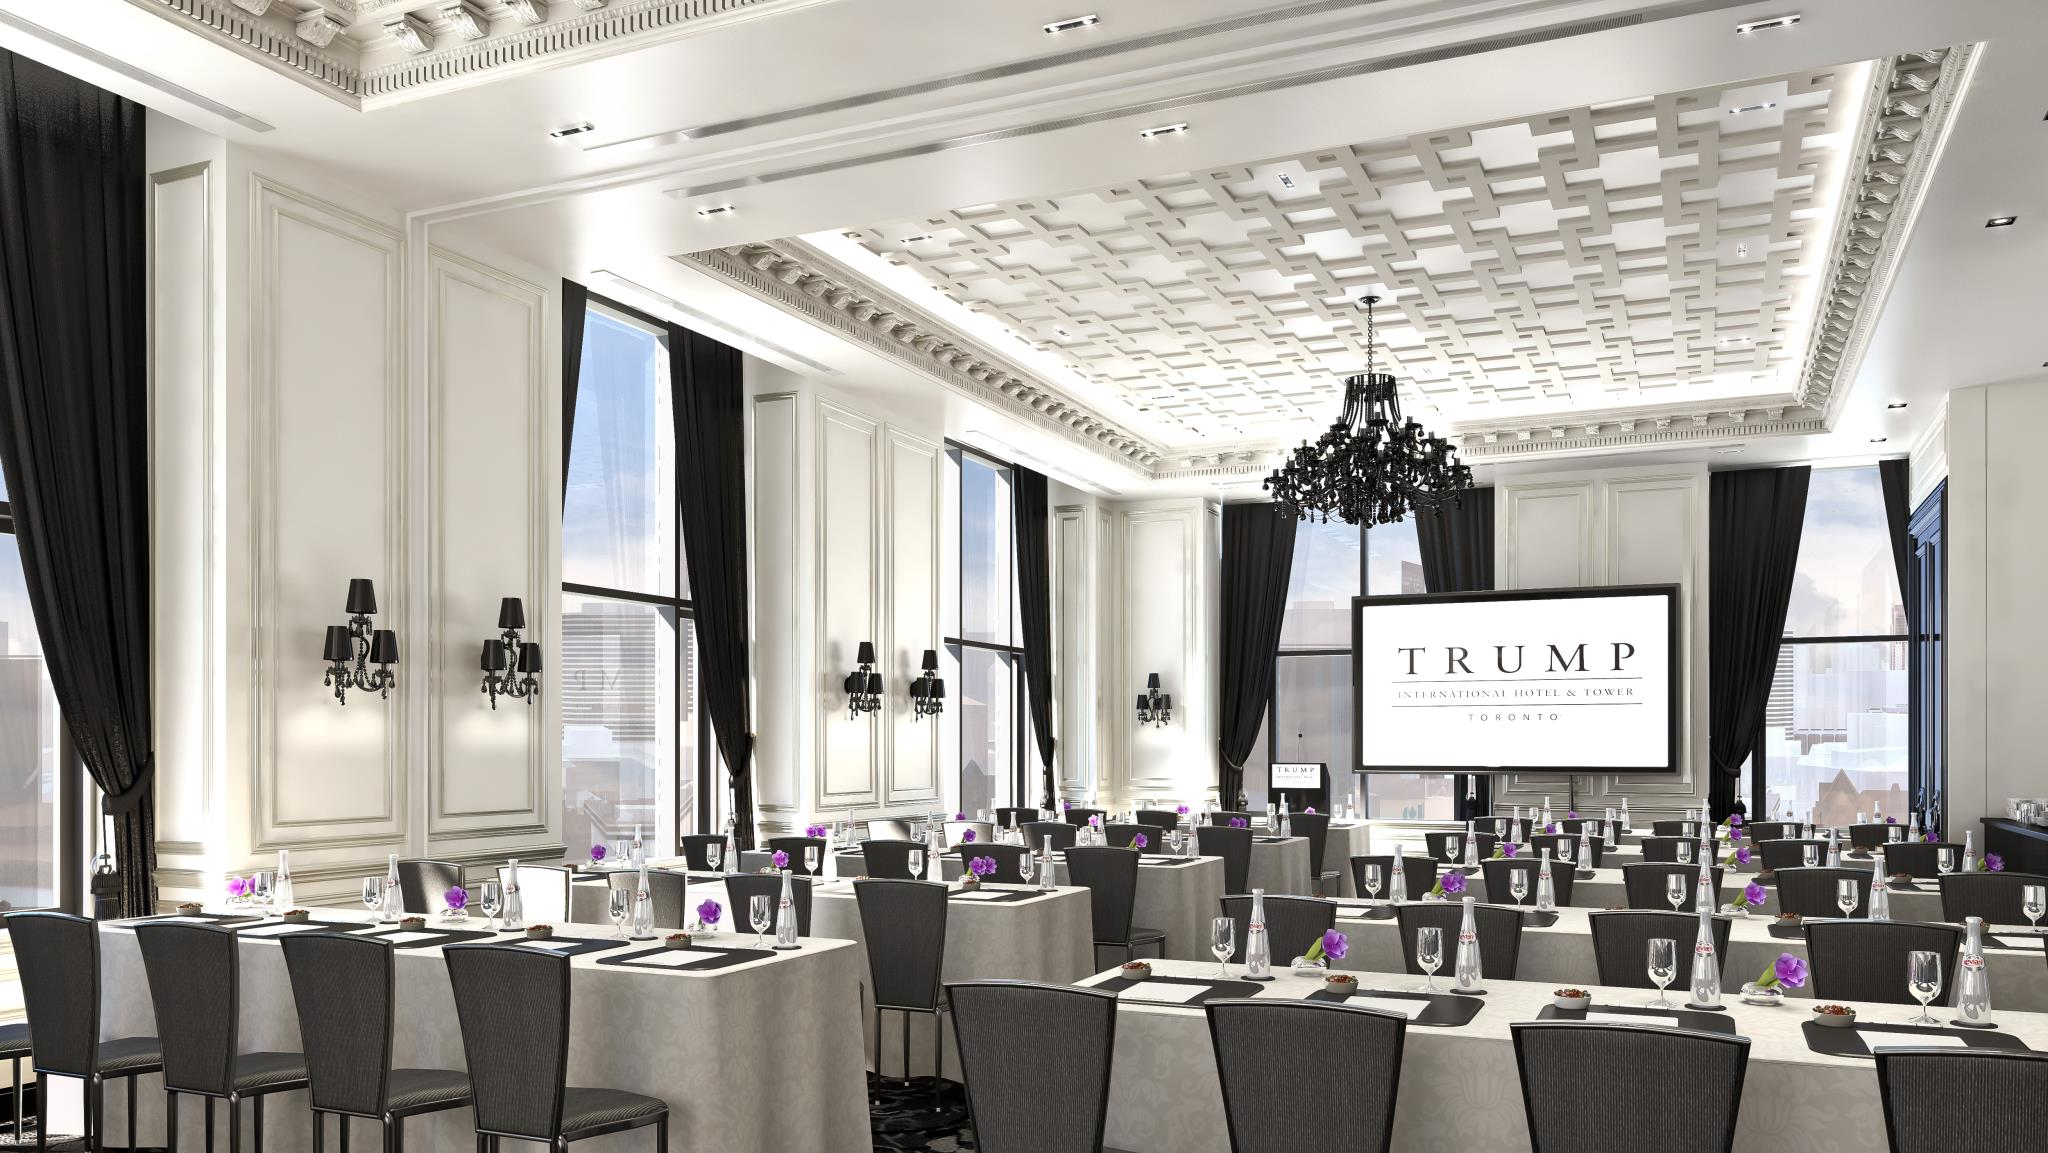 Weddings and events at trump international hotel and tower for Special hotels worldwide